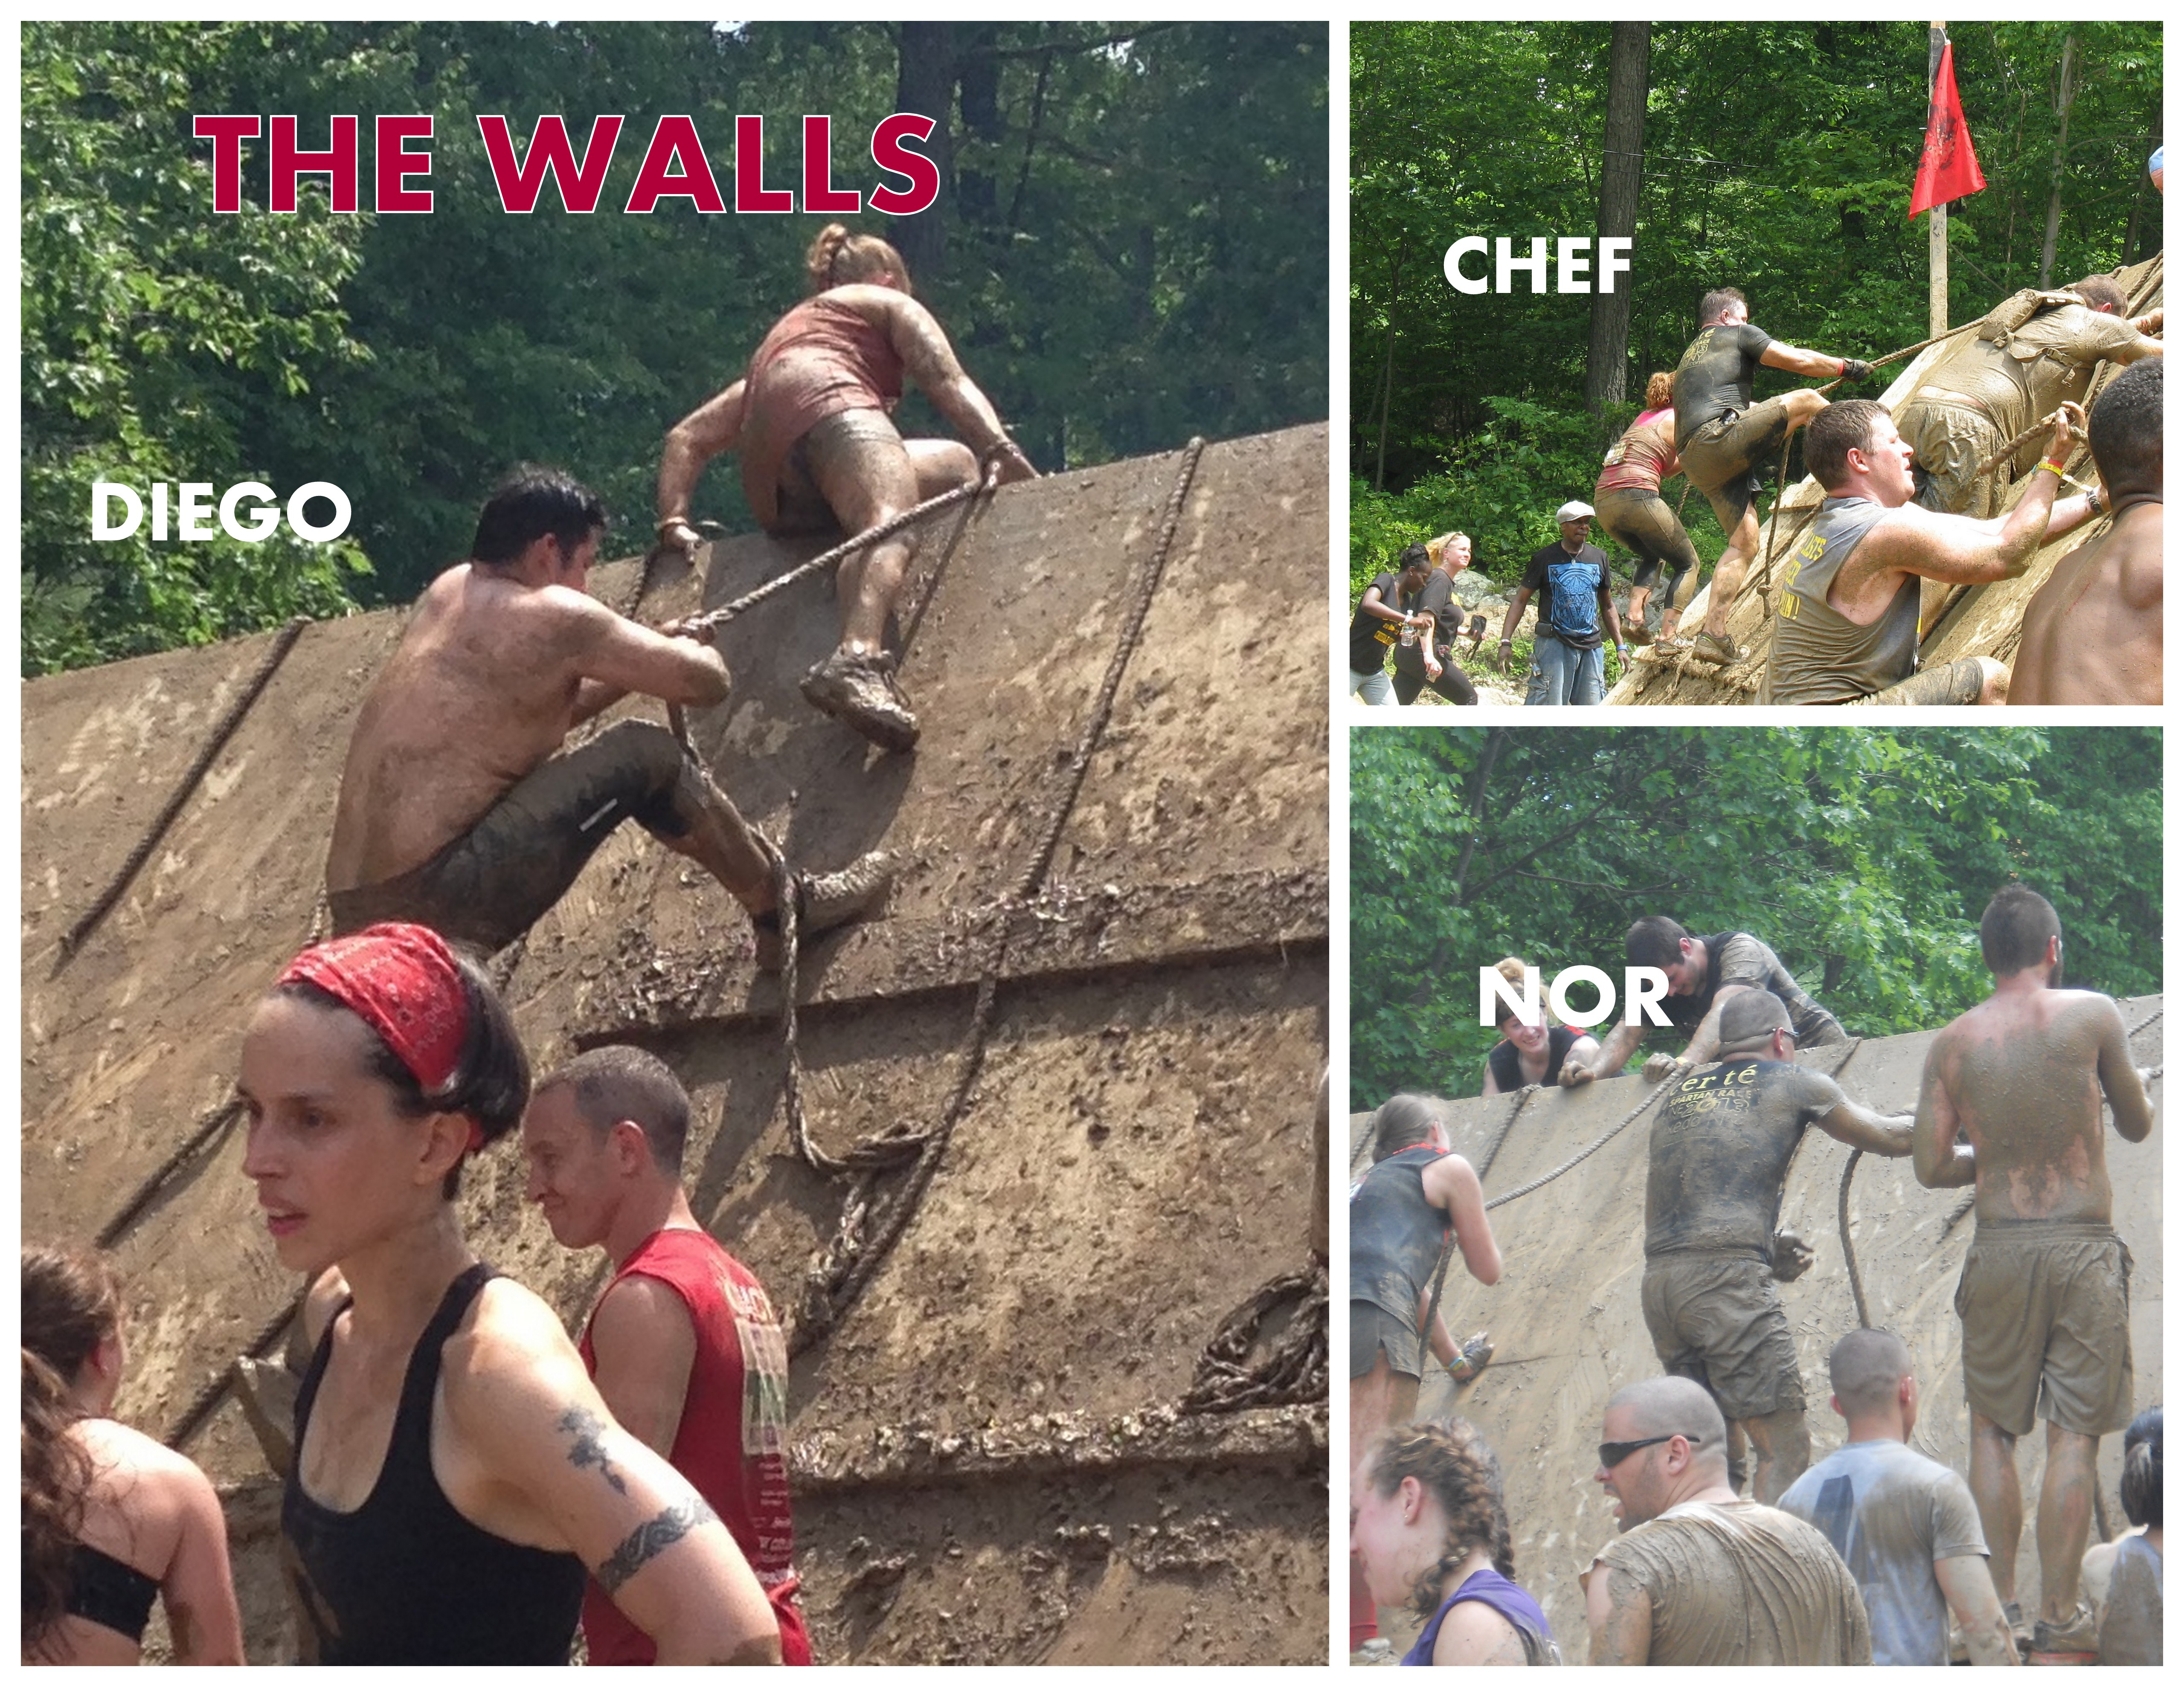 Spartan Race 2013.Collage. THE WALLS